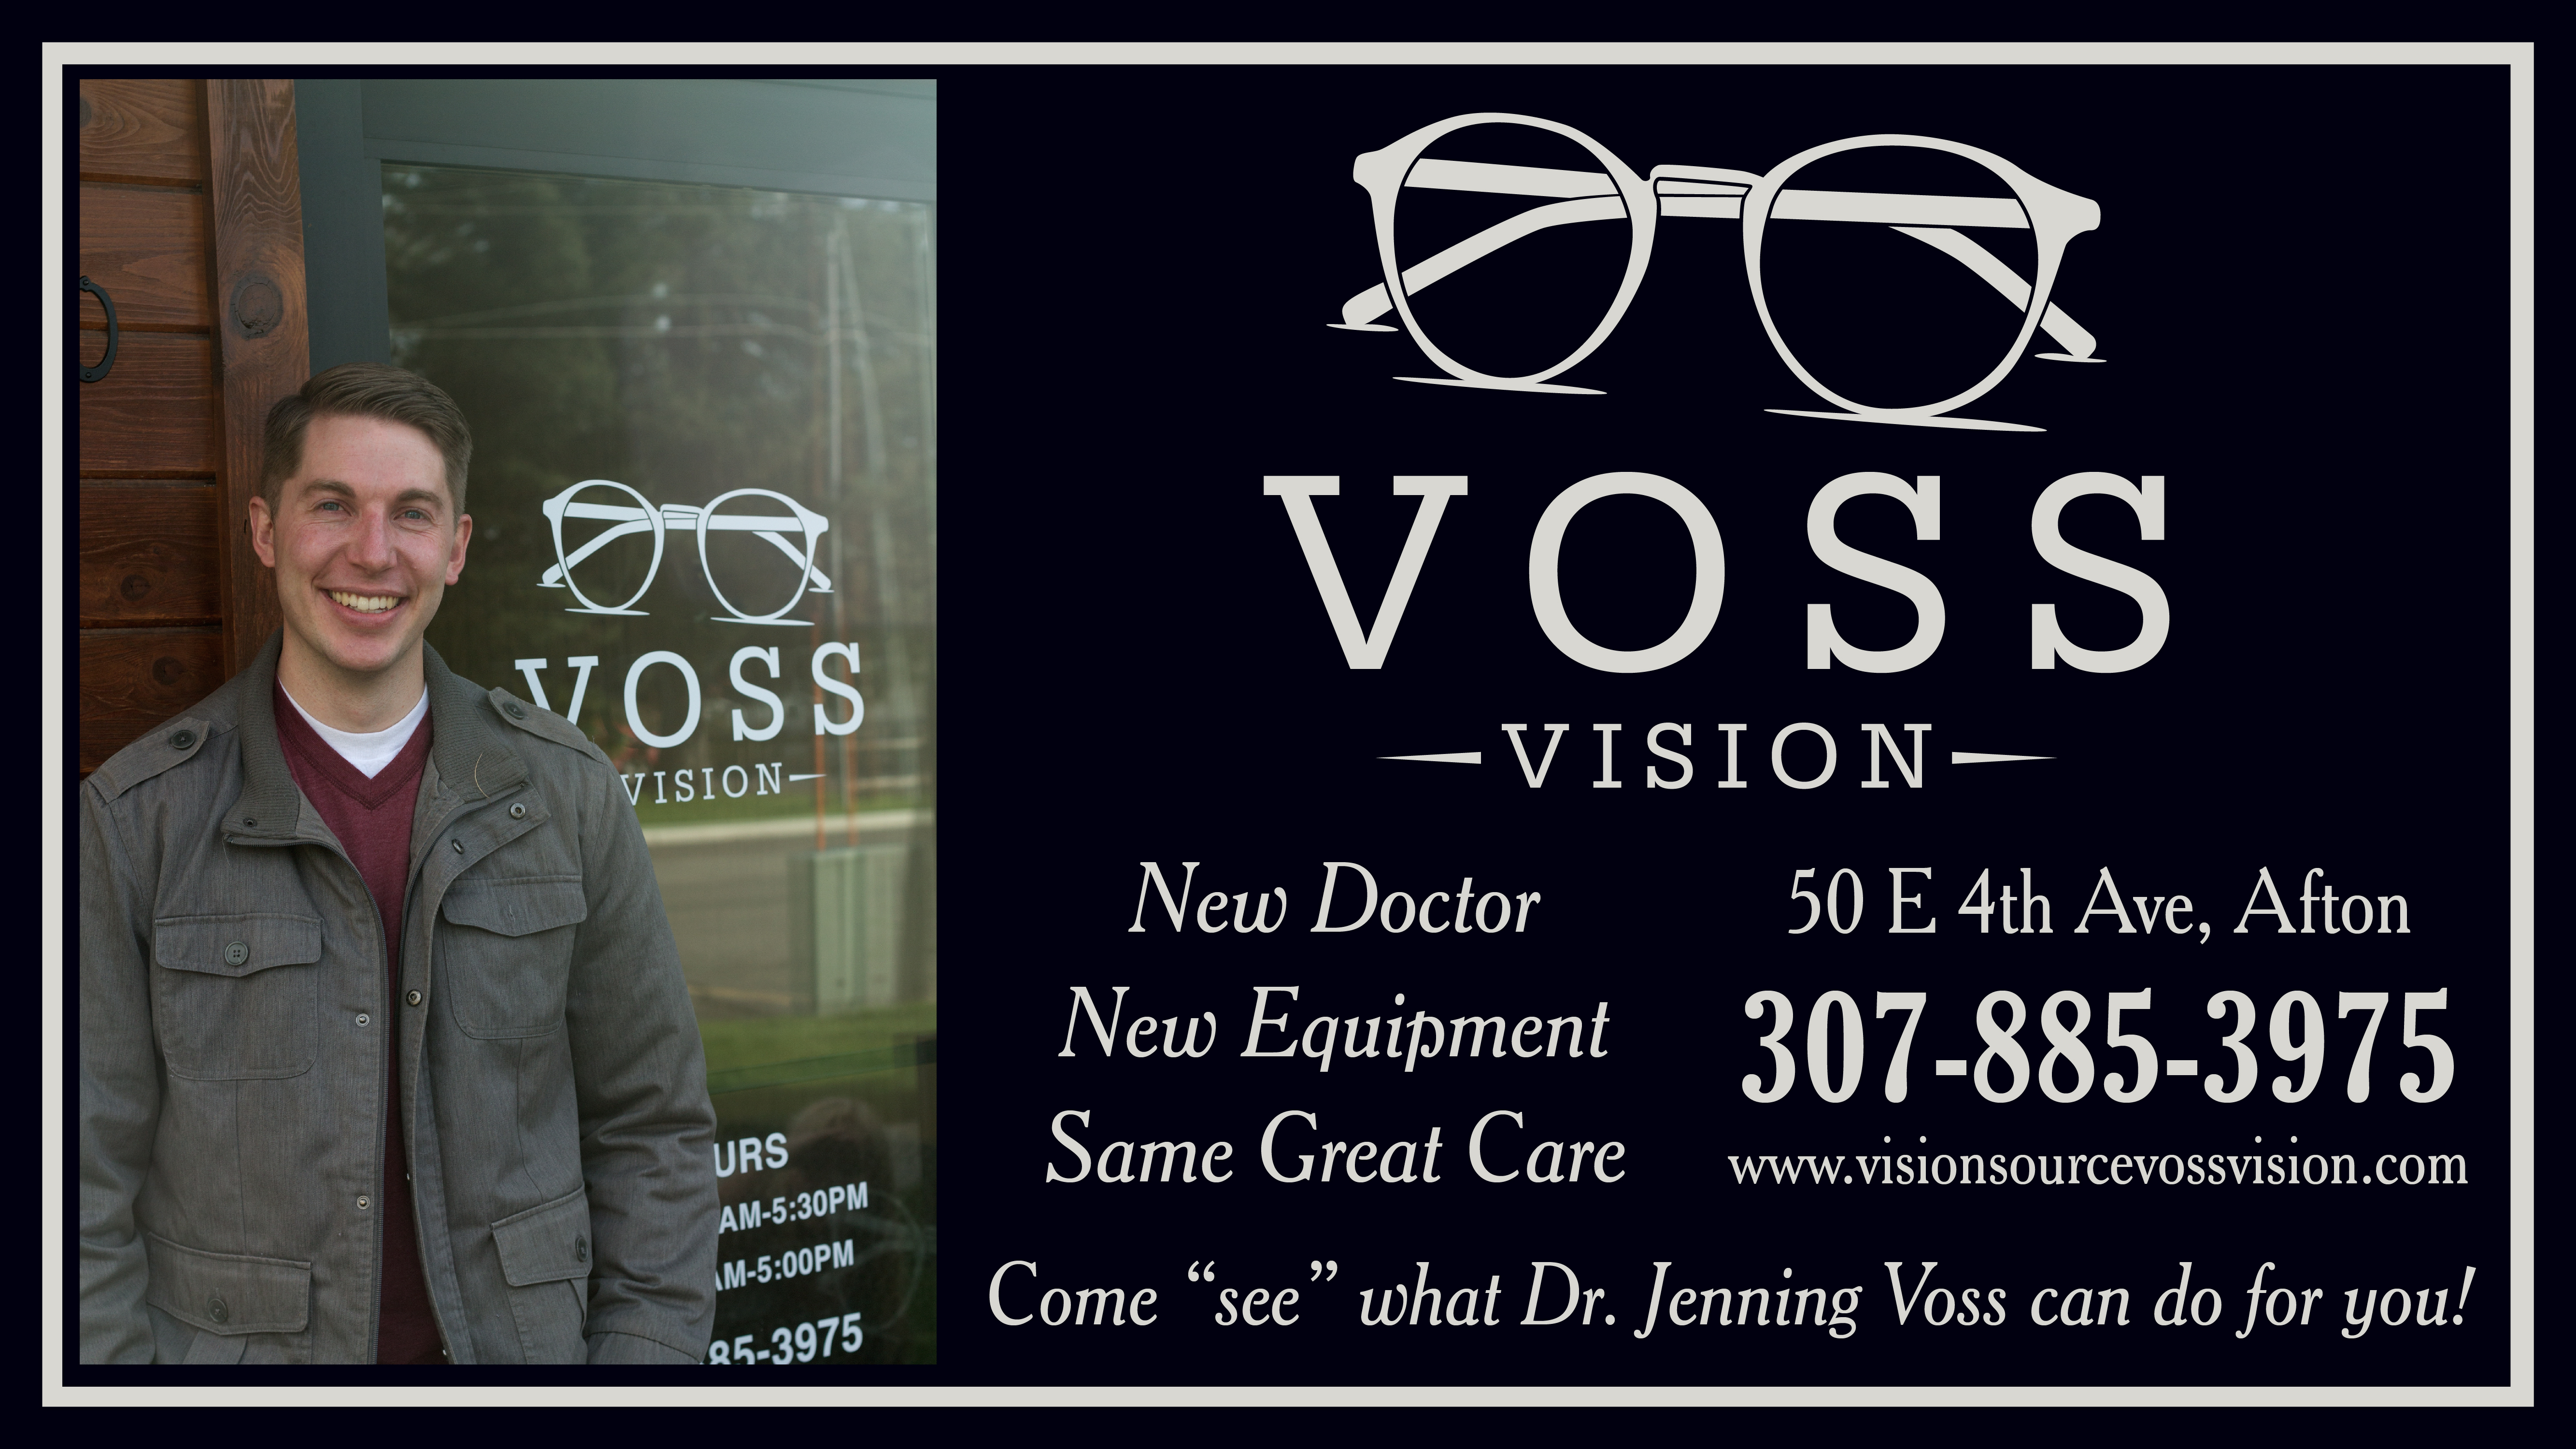 Voss Vision Ad